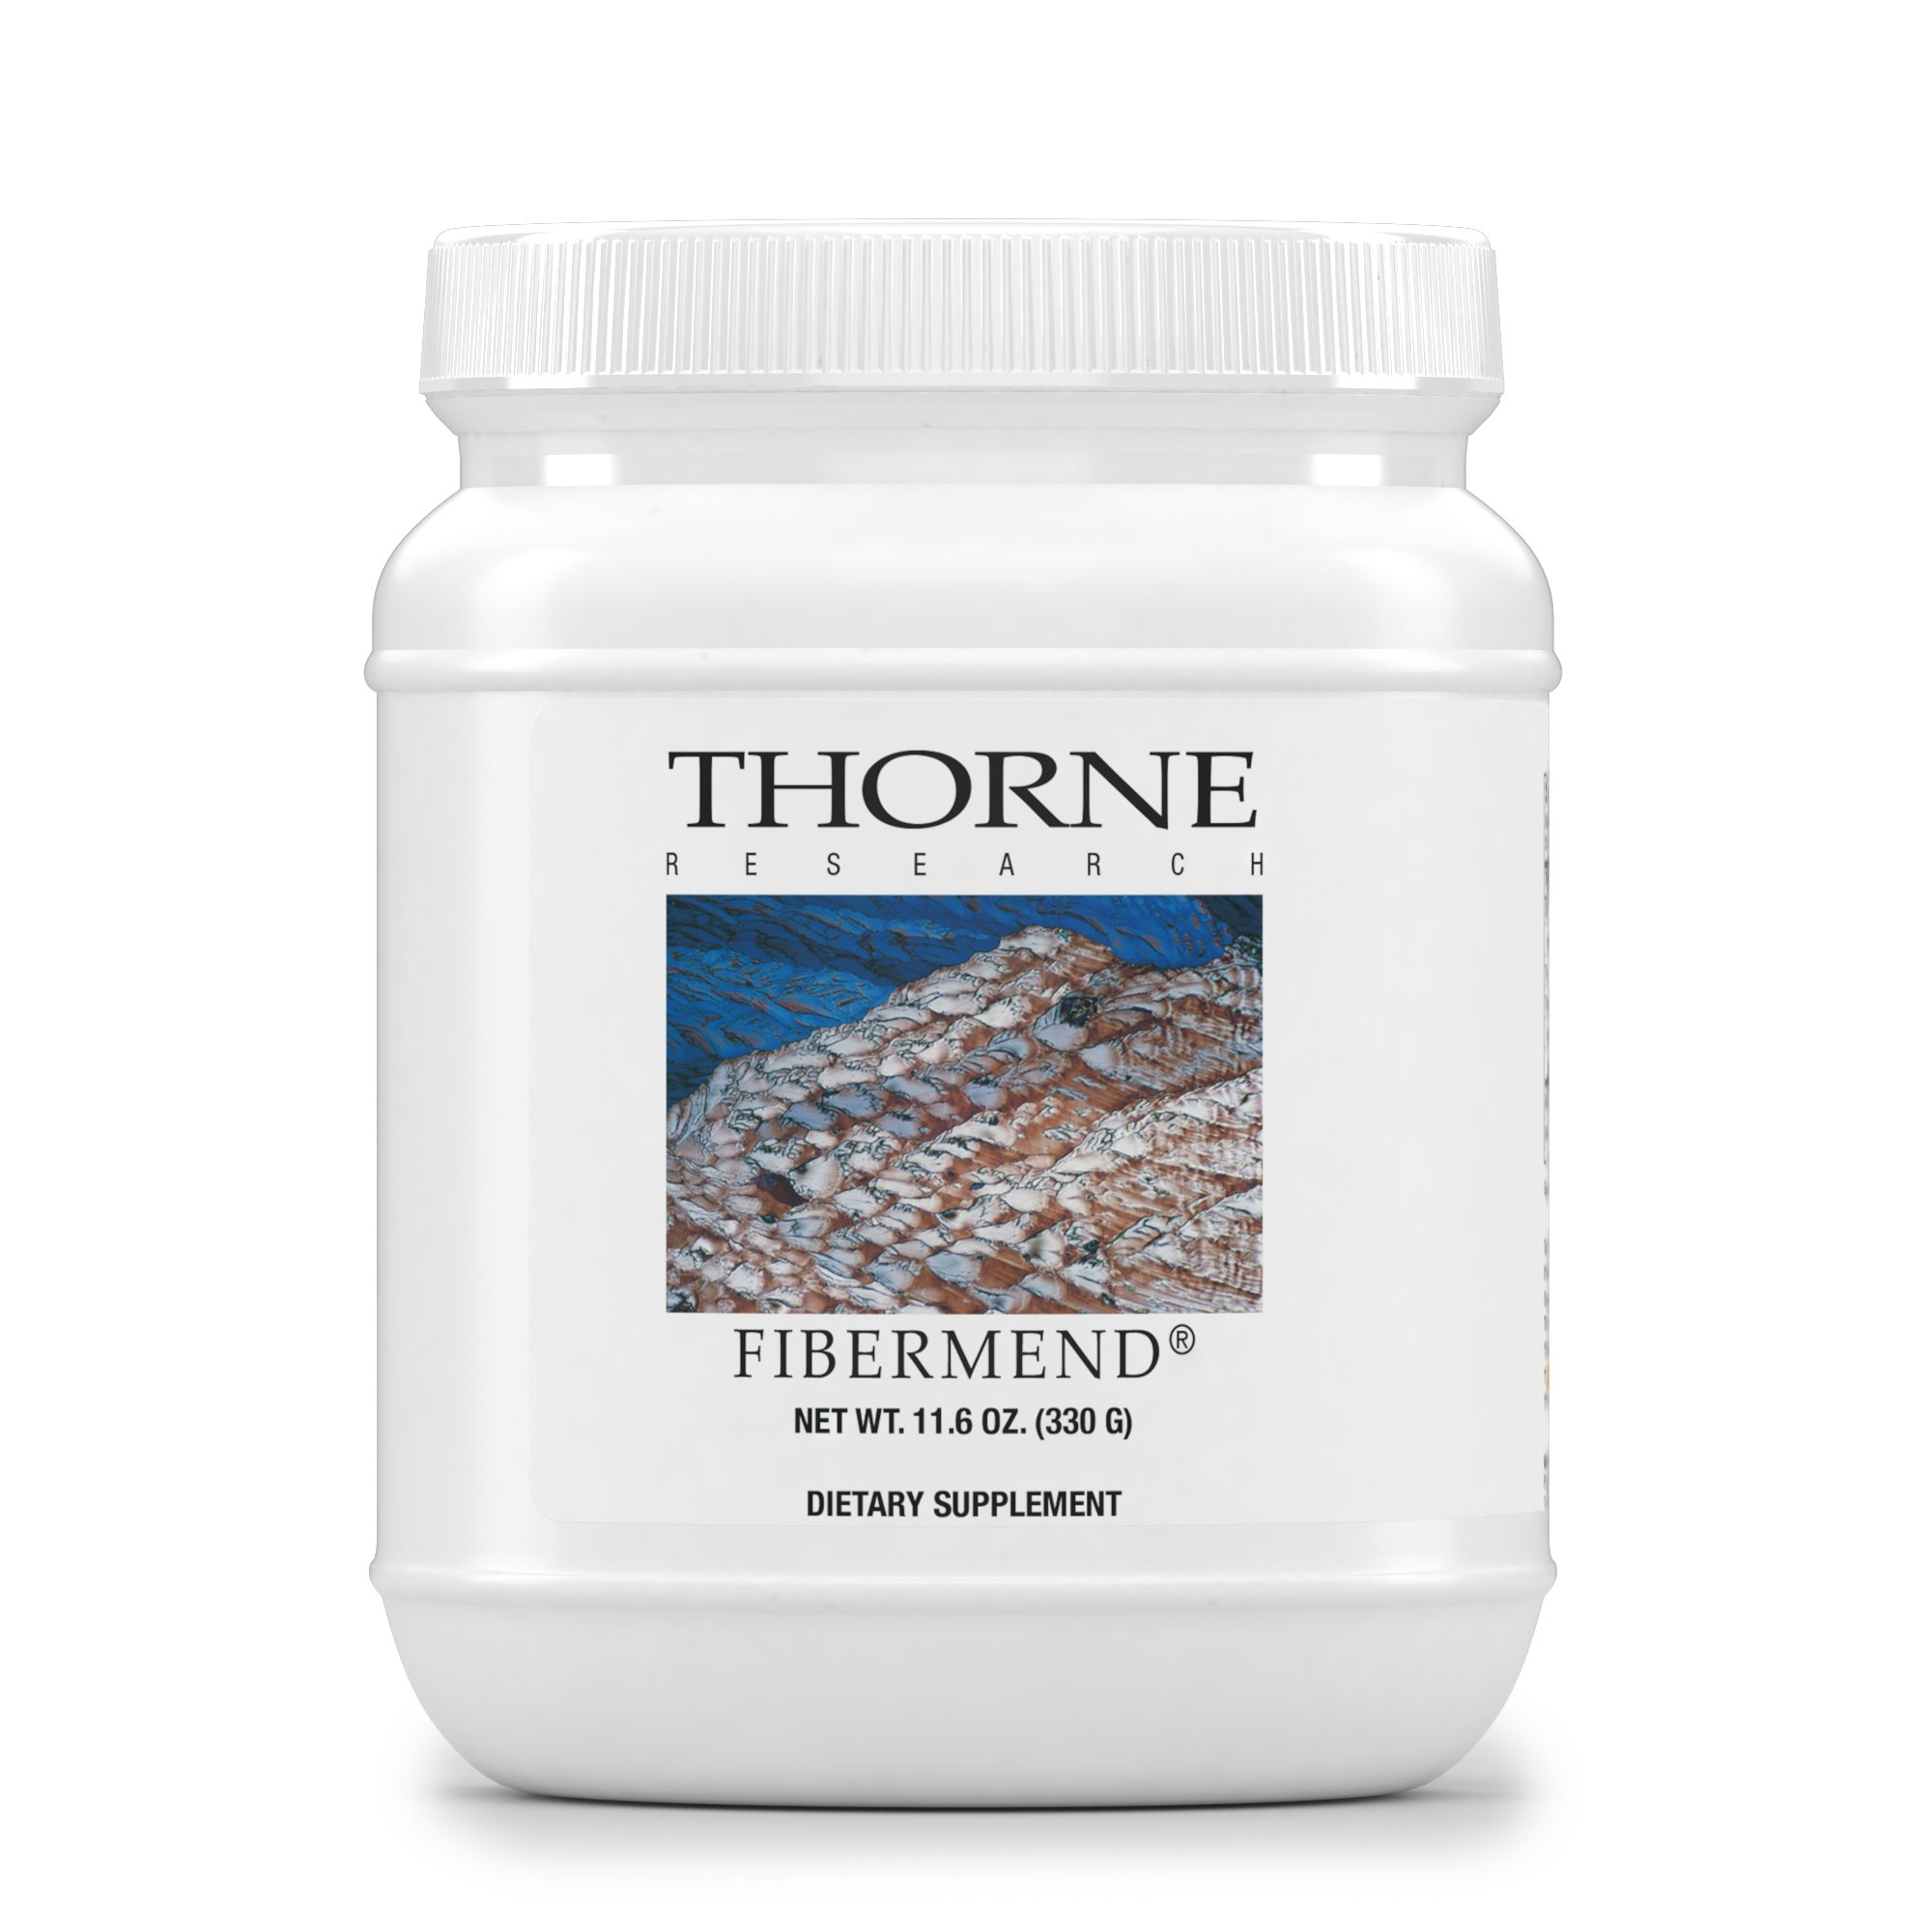 Thorne Research - FiberMend - Prebiotic Fiber Powder to Help Maintain Regularity and Balanced GI Flora - 11.6 oz.